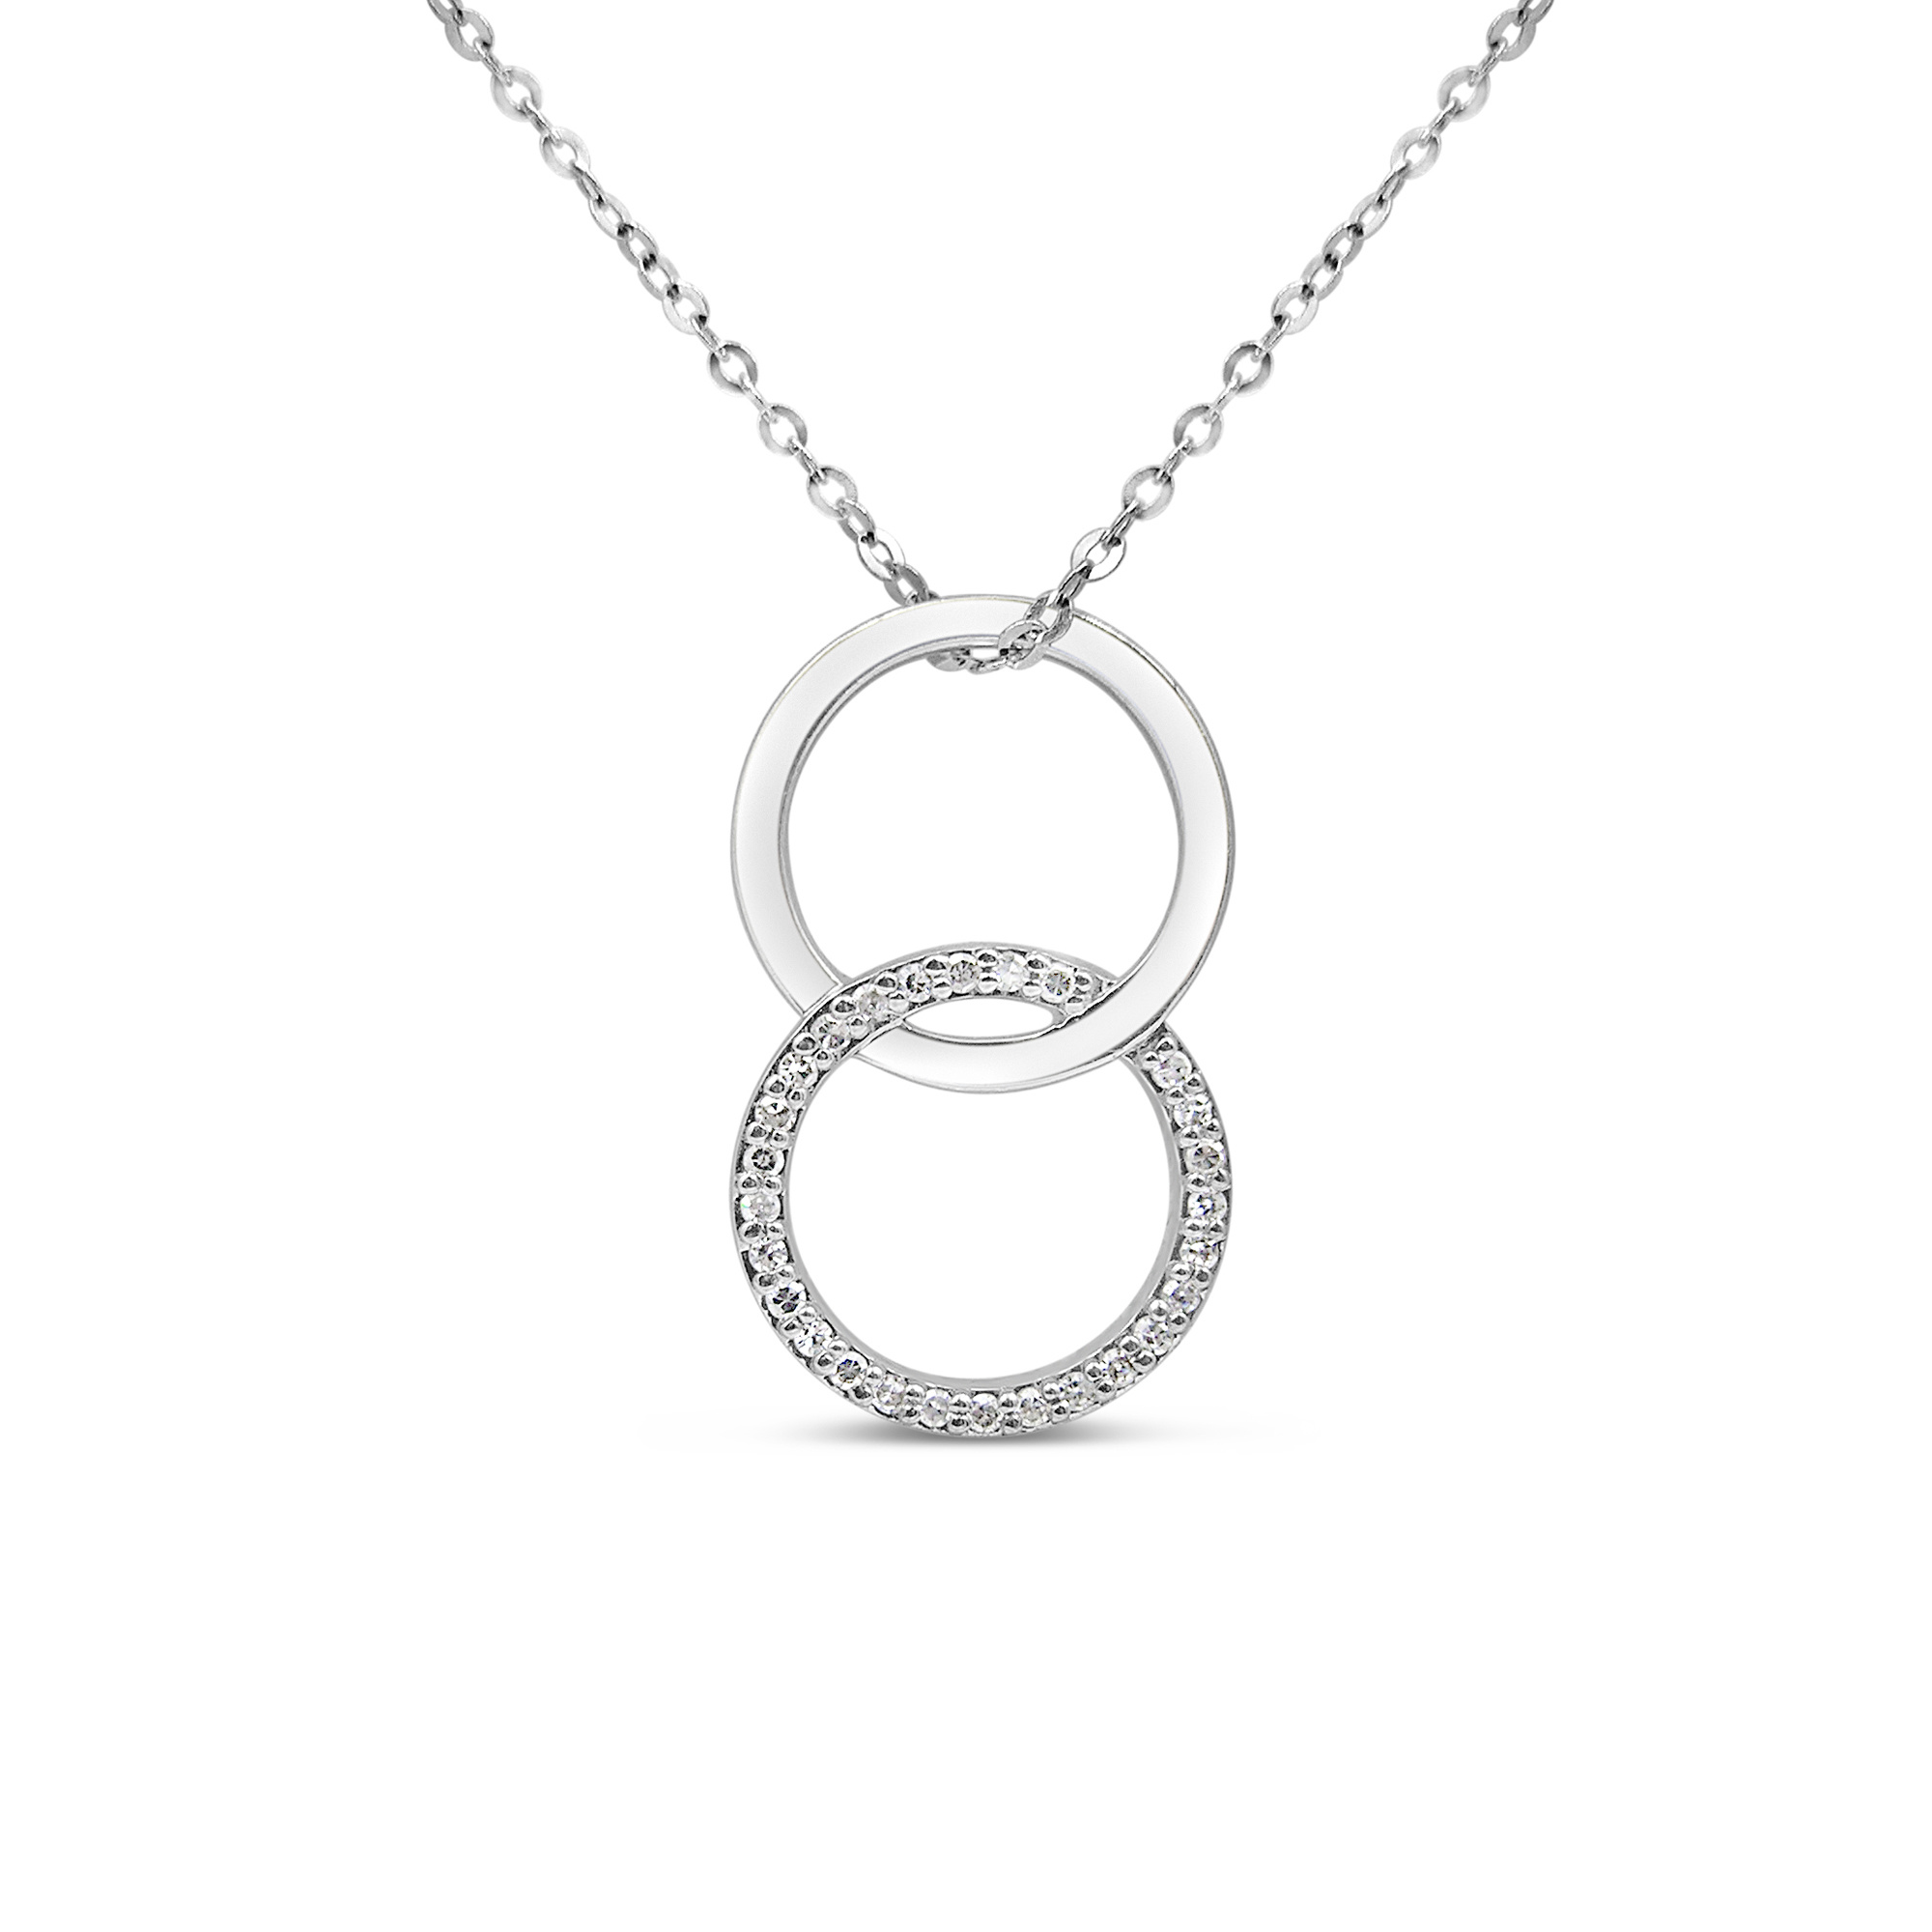 18kt white gold pendant with 0.13 ct diamonds